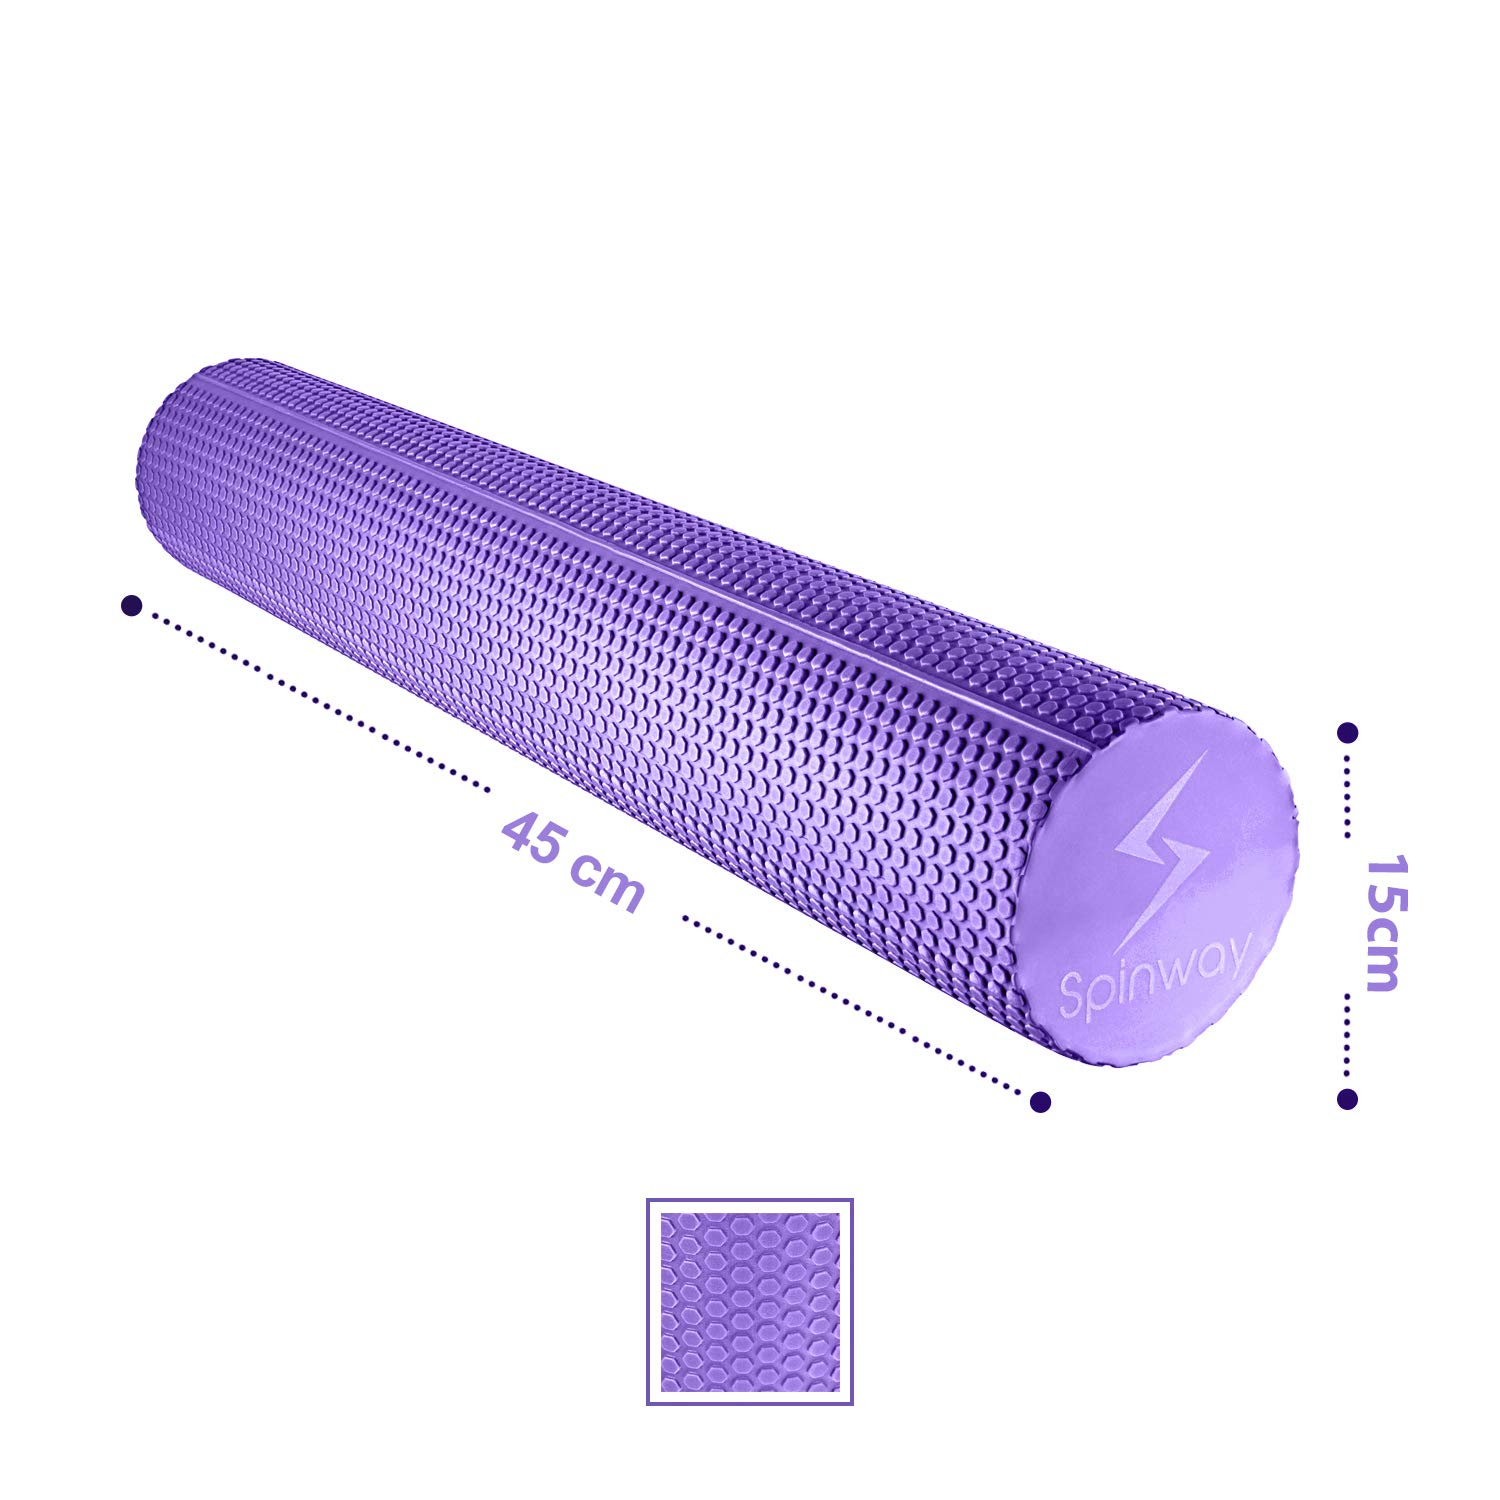 spinway Yoga Foam Roller Speckled Foam Rollers for Muscles Extra Firm High Density for Physical Therapy Exercise Deep Tissue Muscle Massage (Puple) by spinway (Image #5)